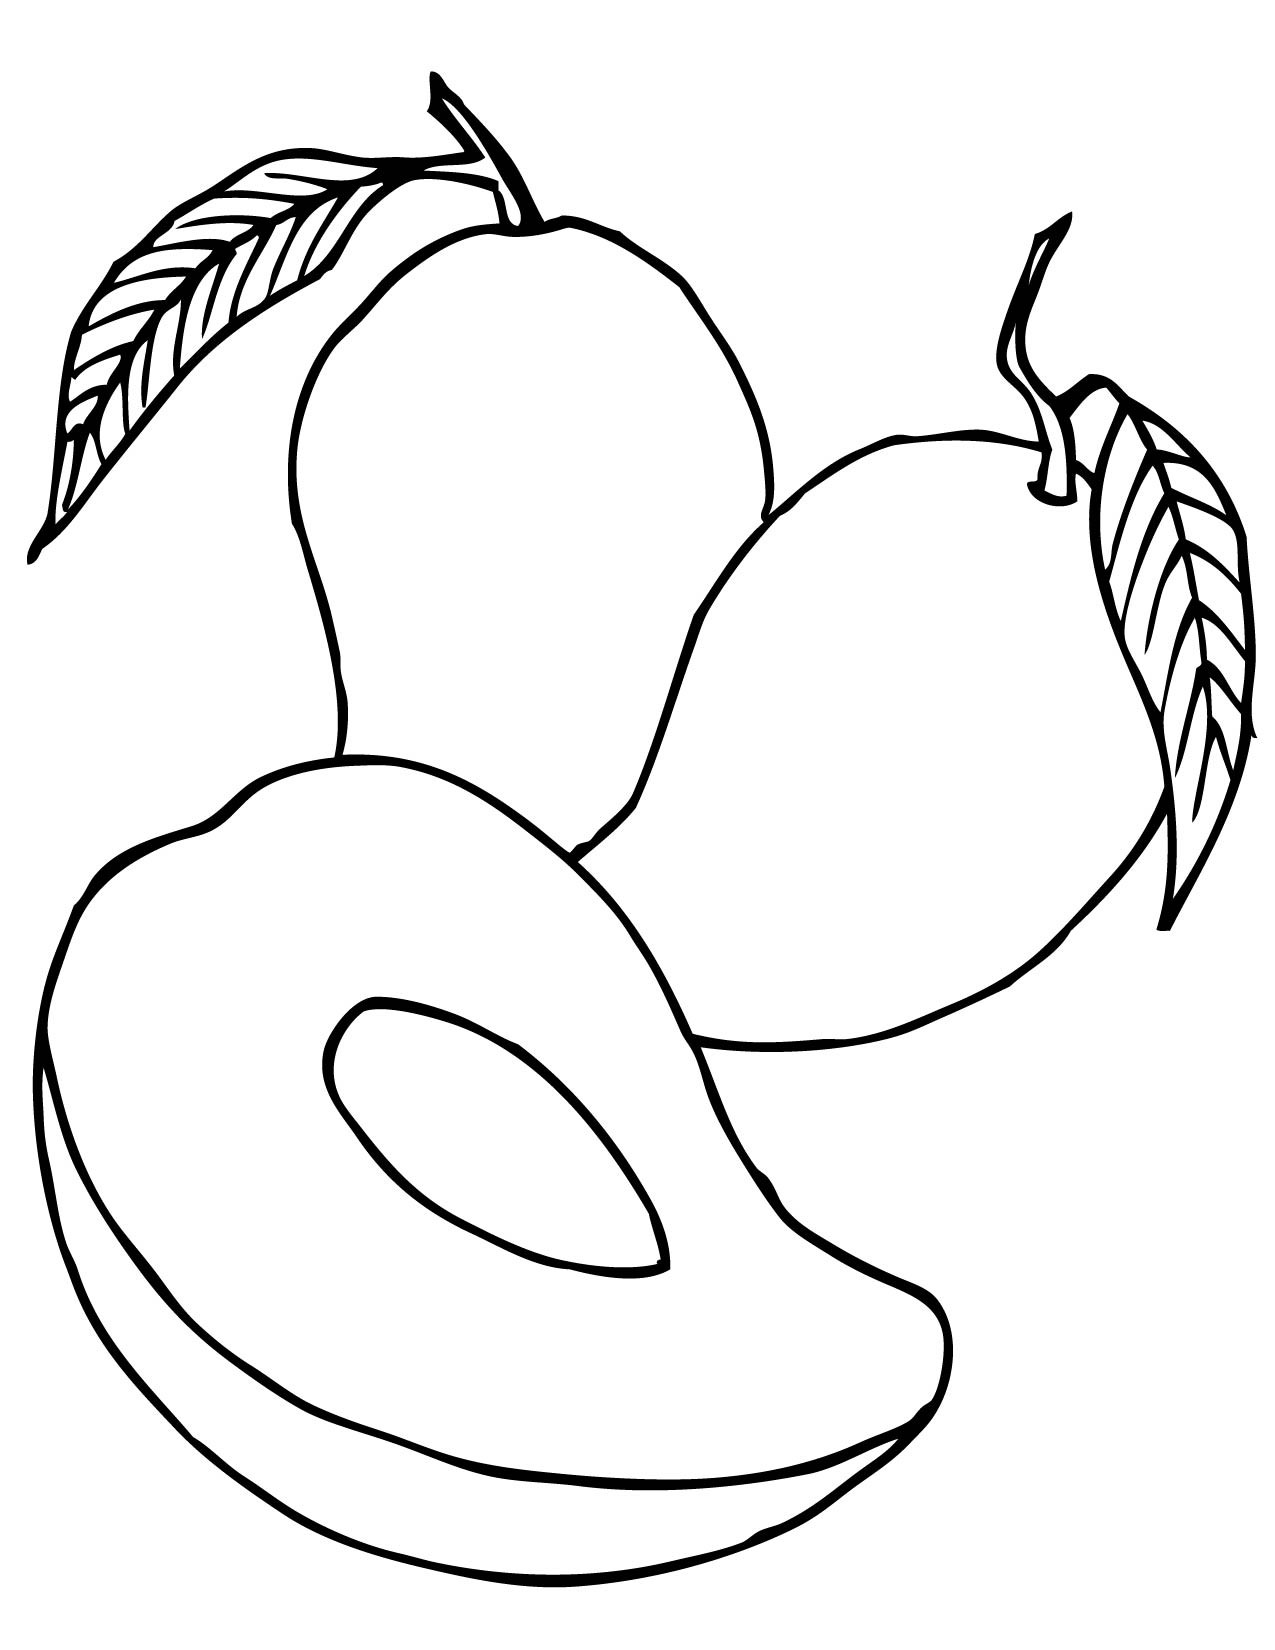 1275x1650 Mango Fruits Coloring Pages For Kids Freecolorngpagesco